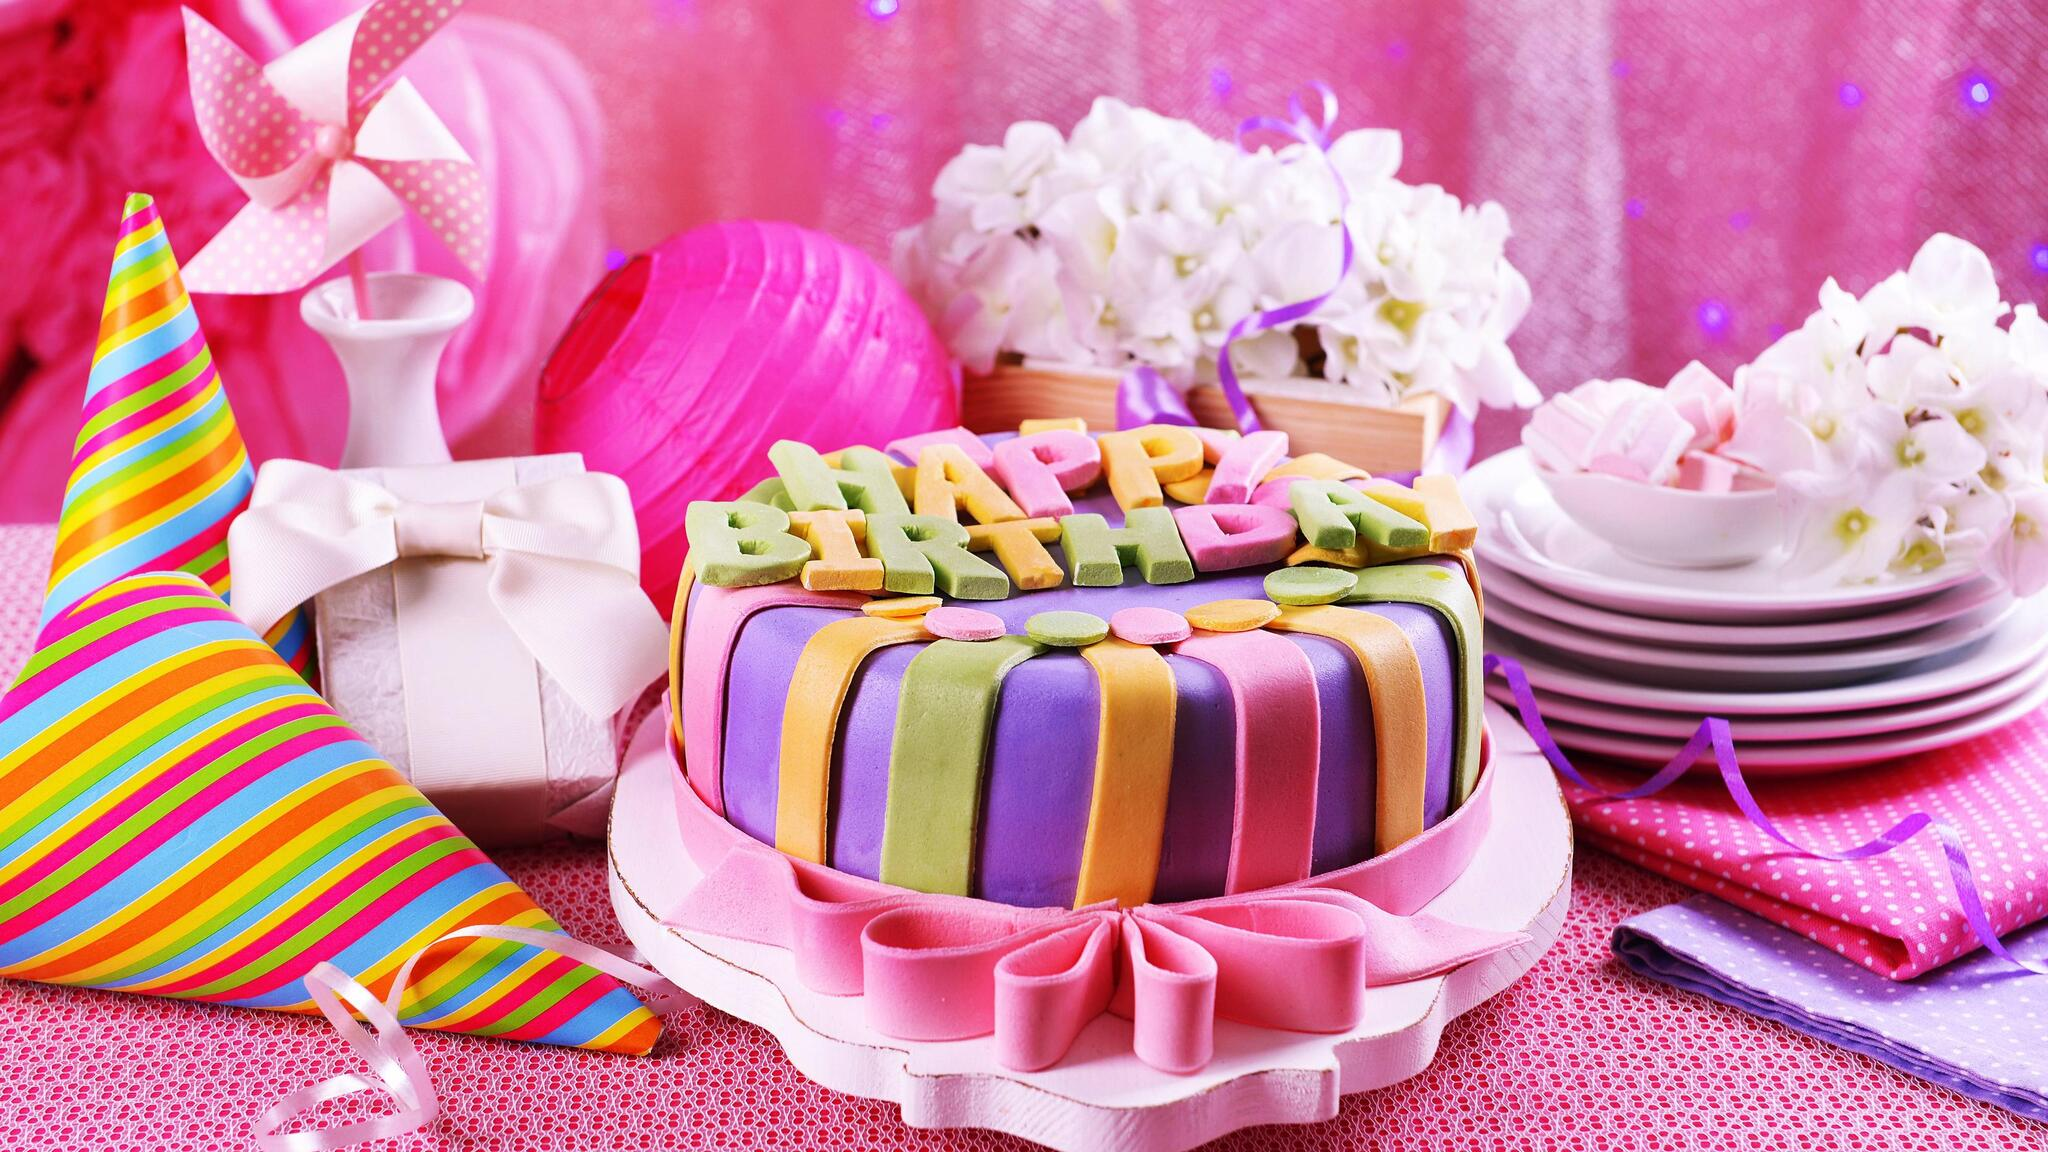 Cake Images Free Download Hd : 2048x1152 Pink Birthday Cake 2048x1152 Resolution HD 4k ...